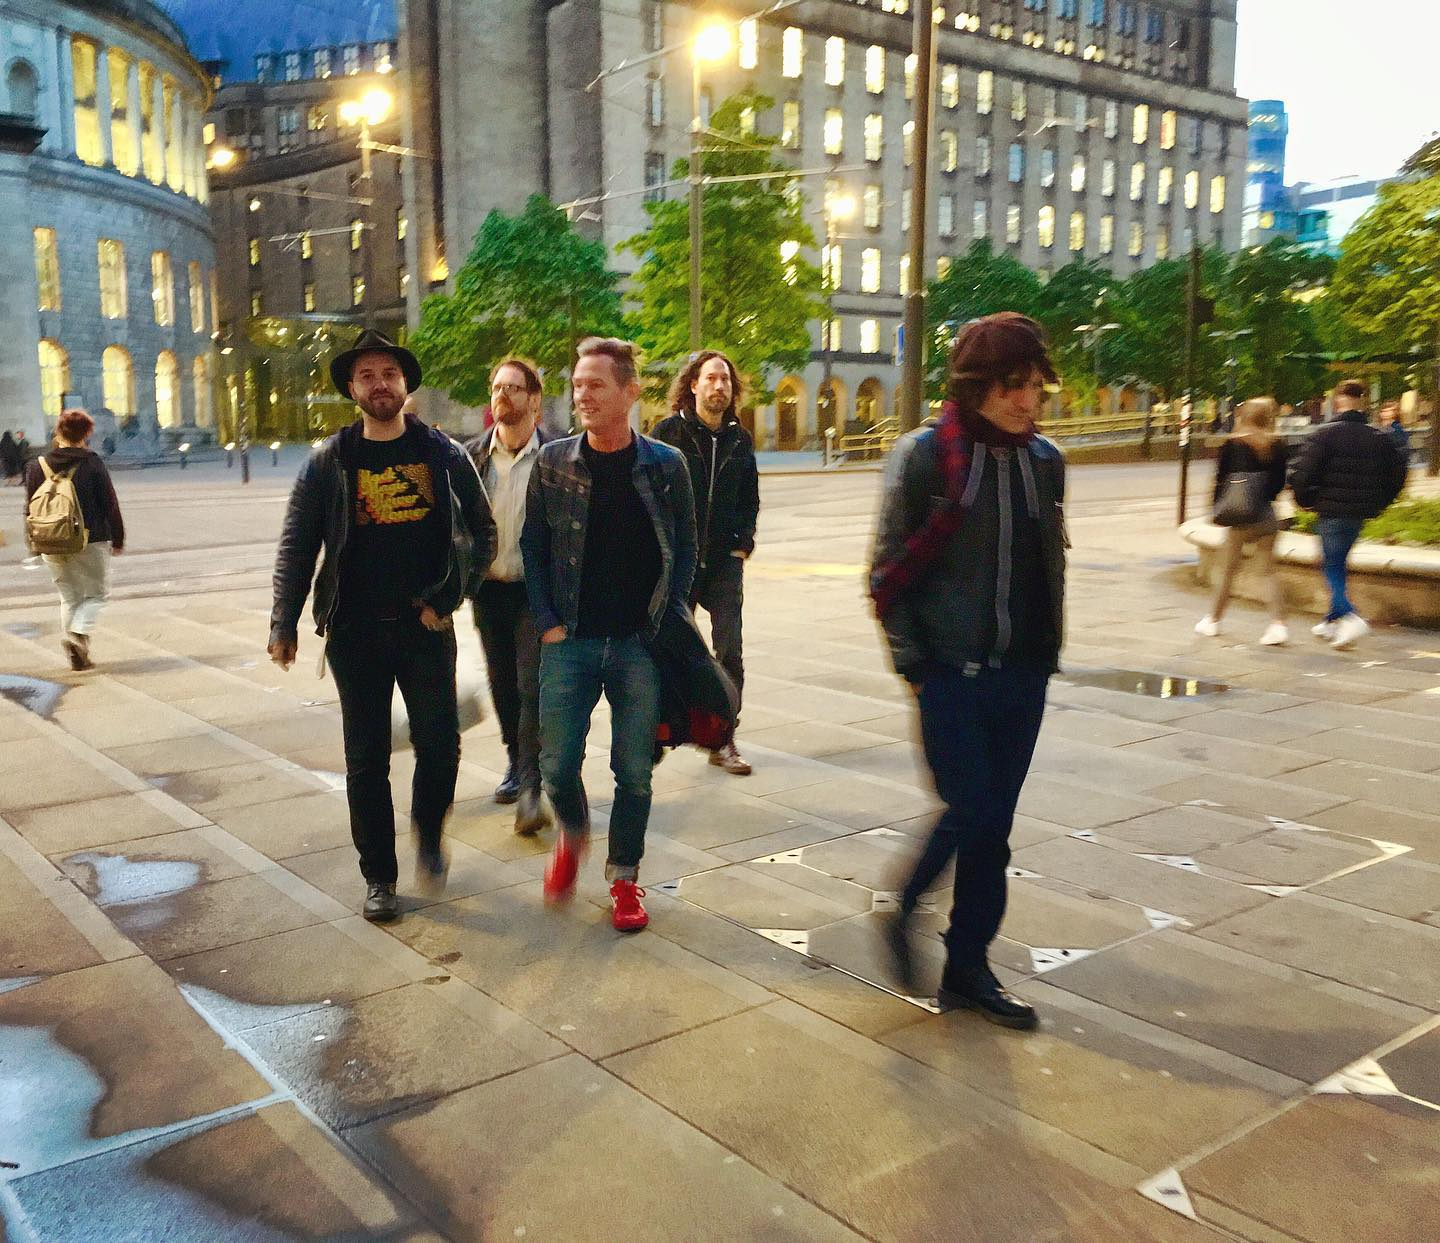 Evening stroll with the Jesse Malin crew. (Manchester)